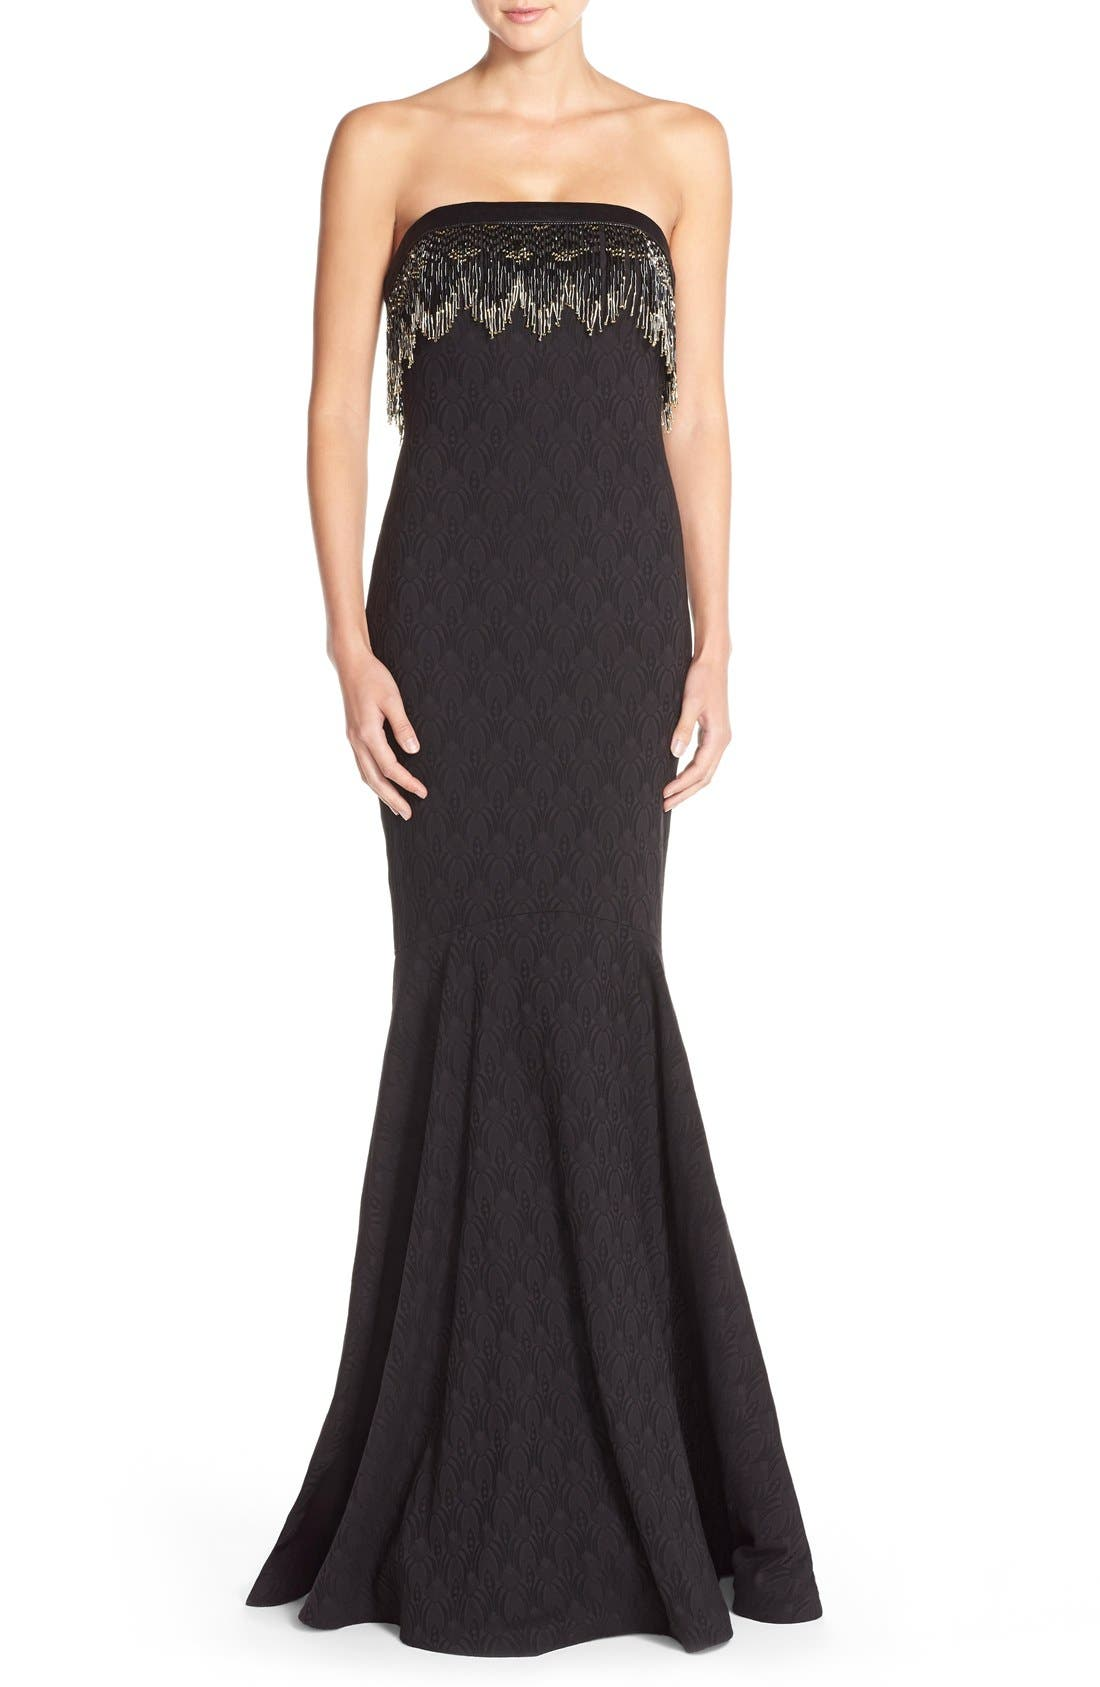 Alternate Image 1 Selected - Badgley Mischka Bead Fringe Jacquard Mermaid Gown